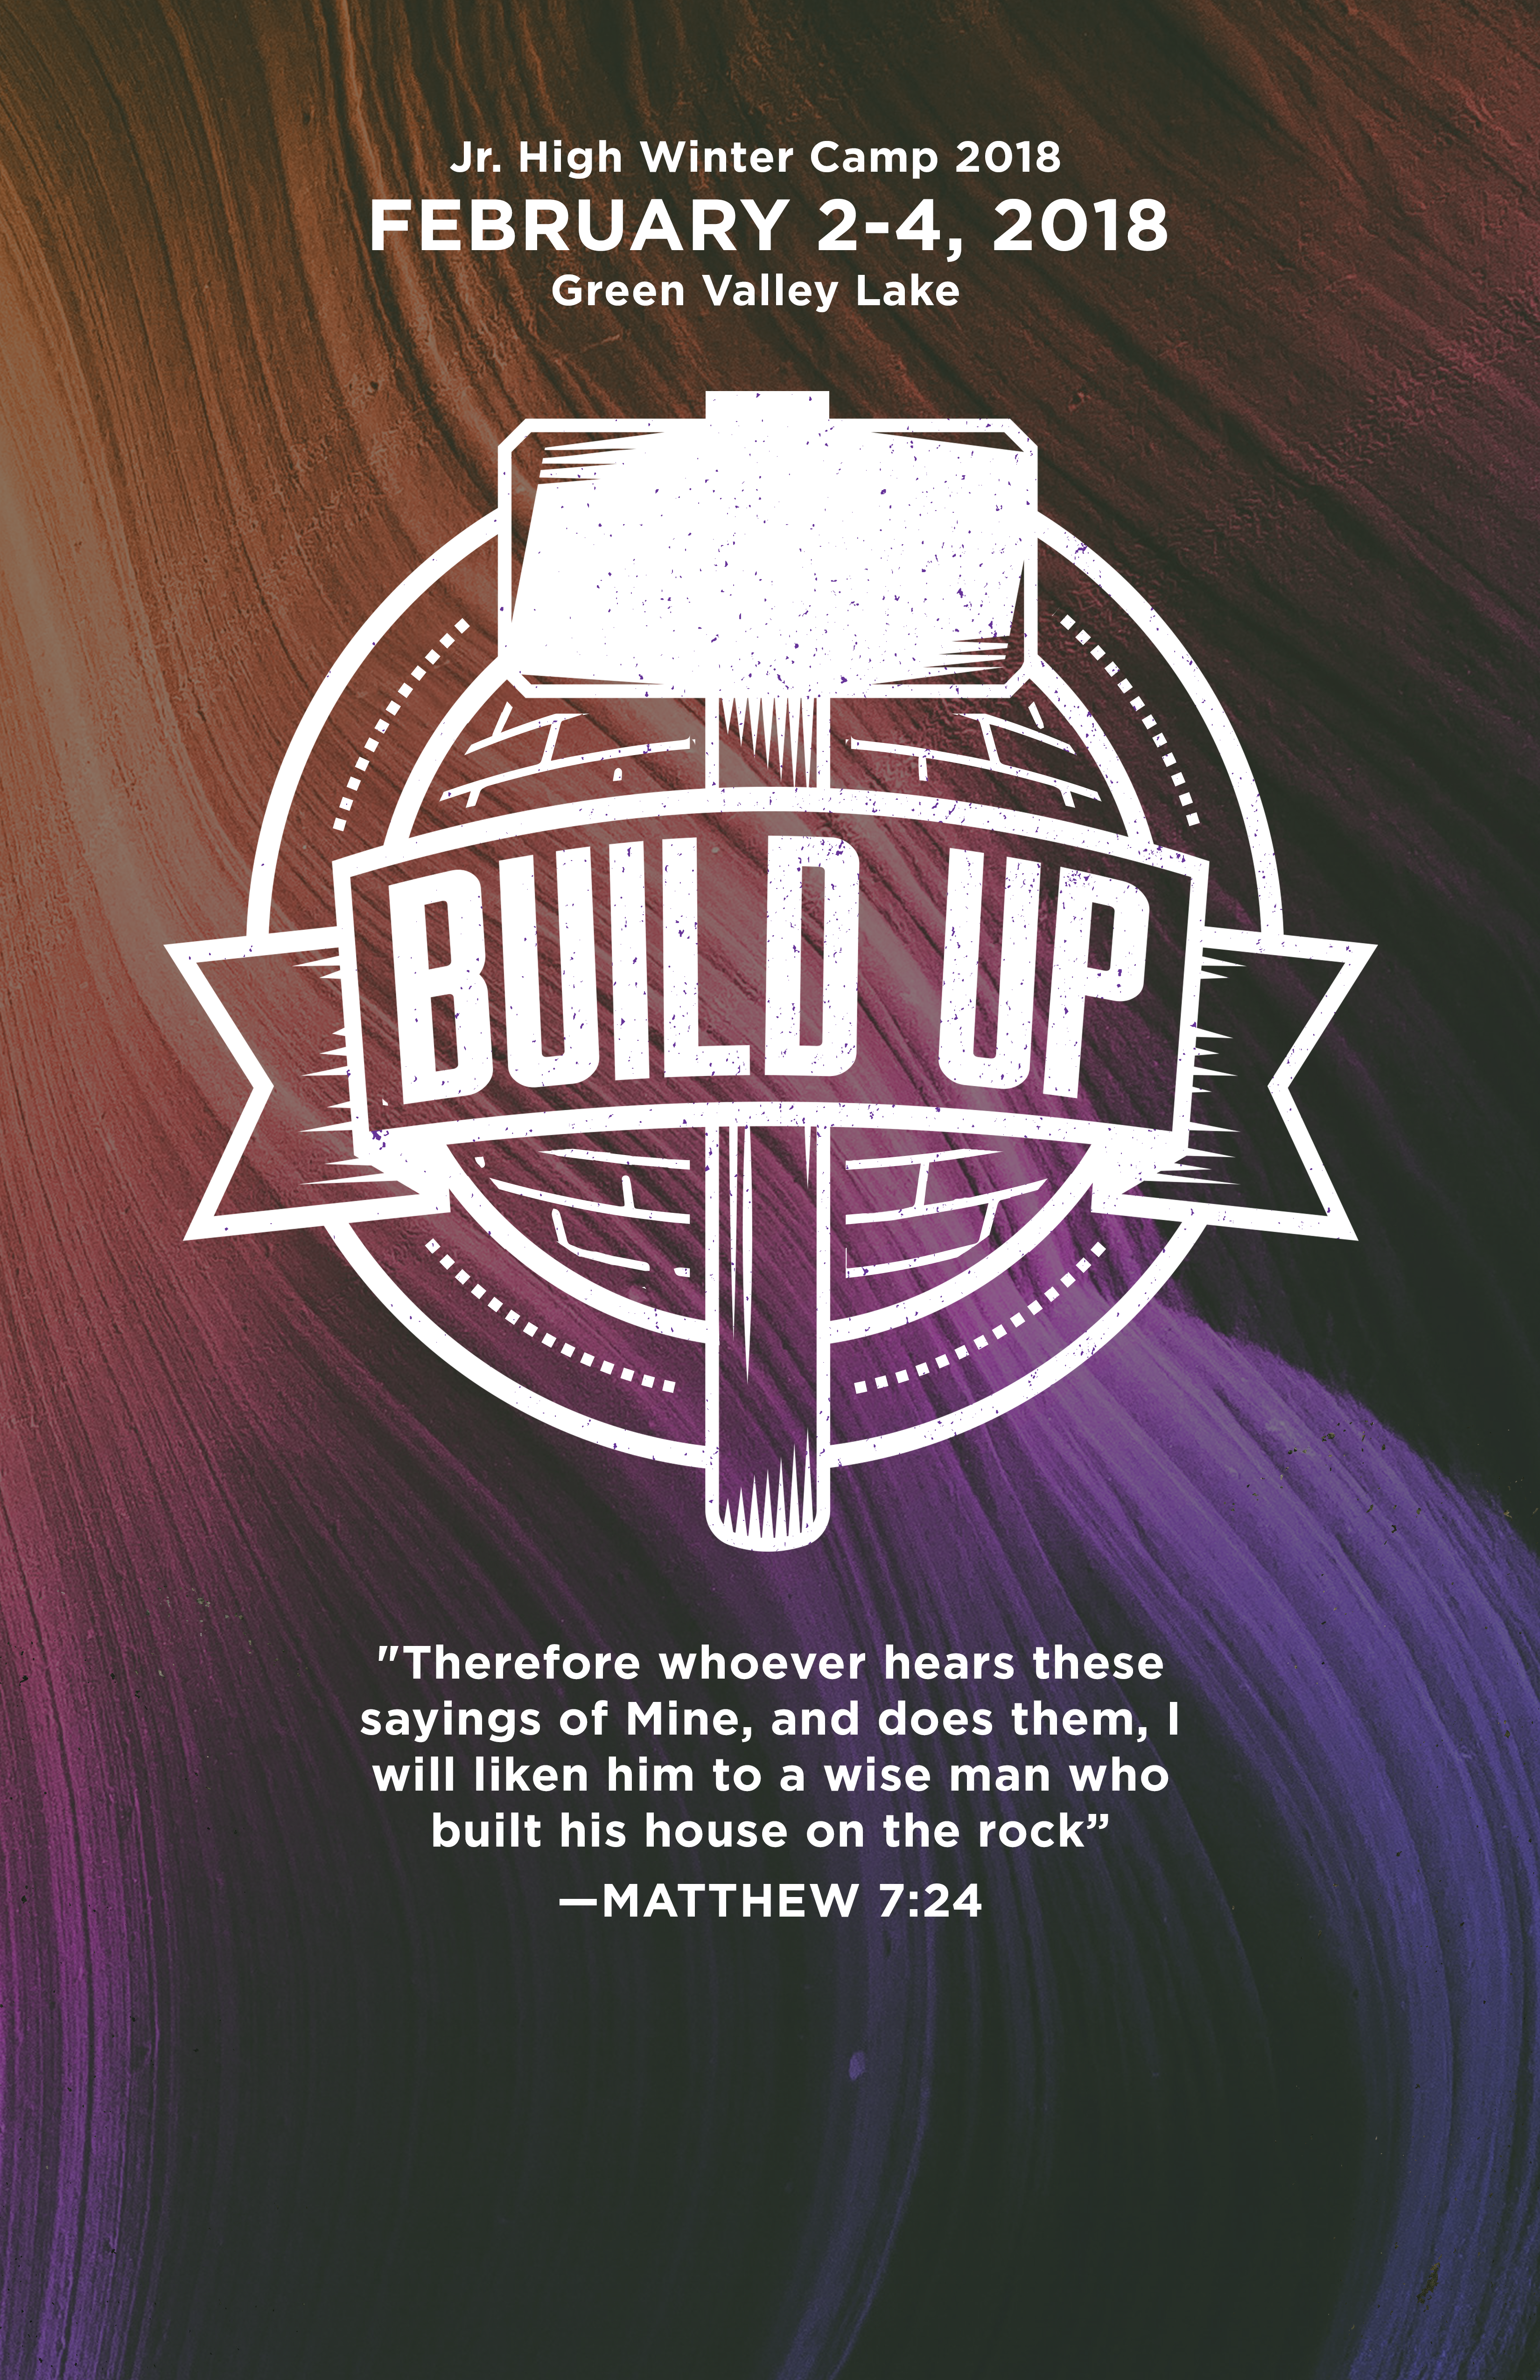 Build up poster blank logo